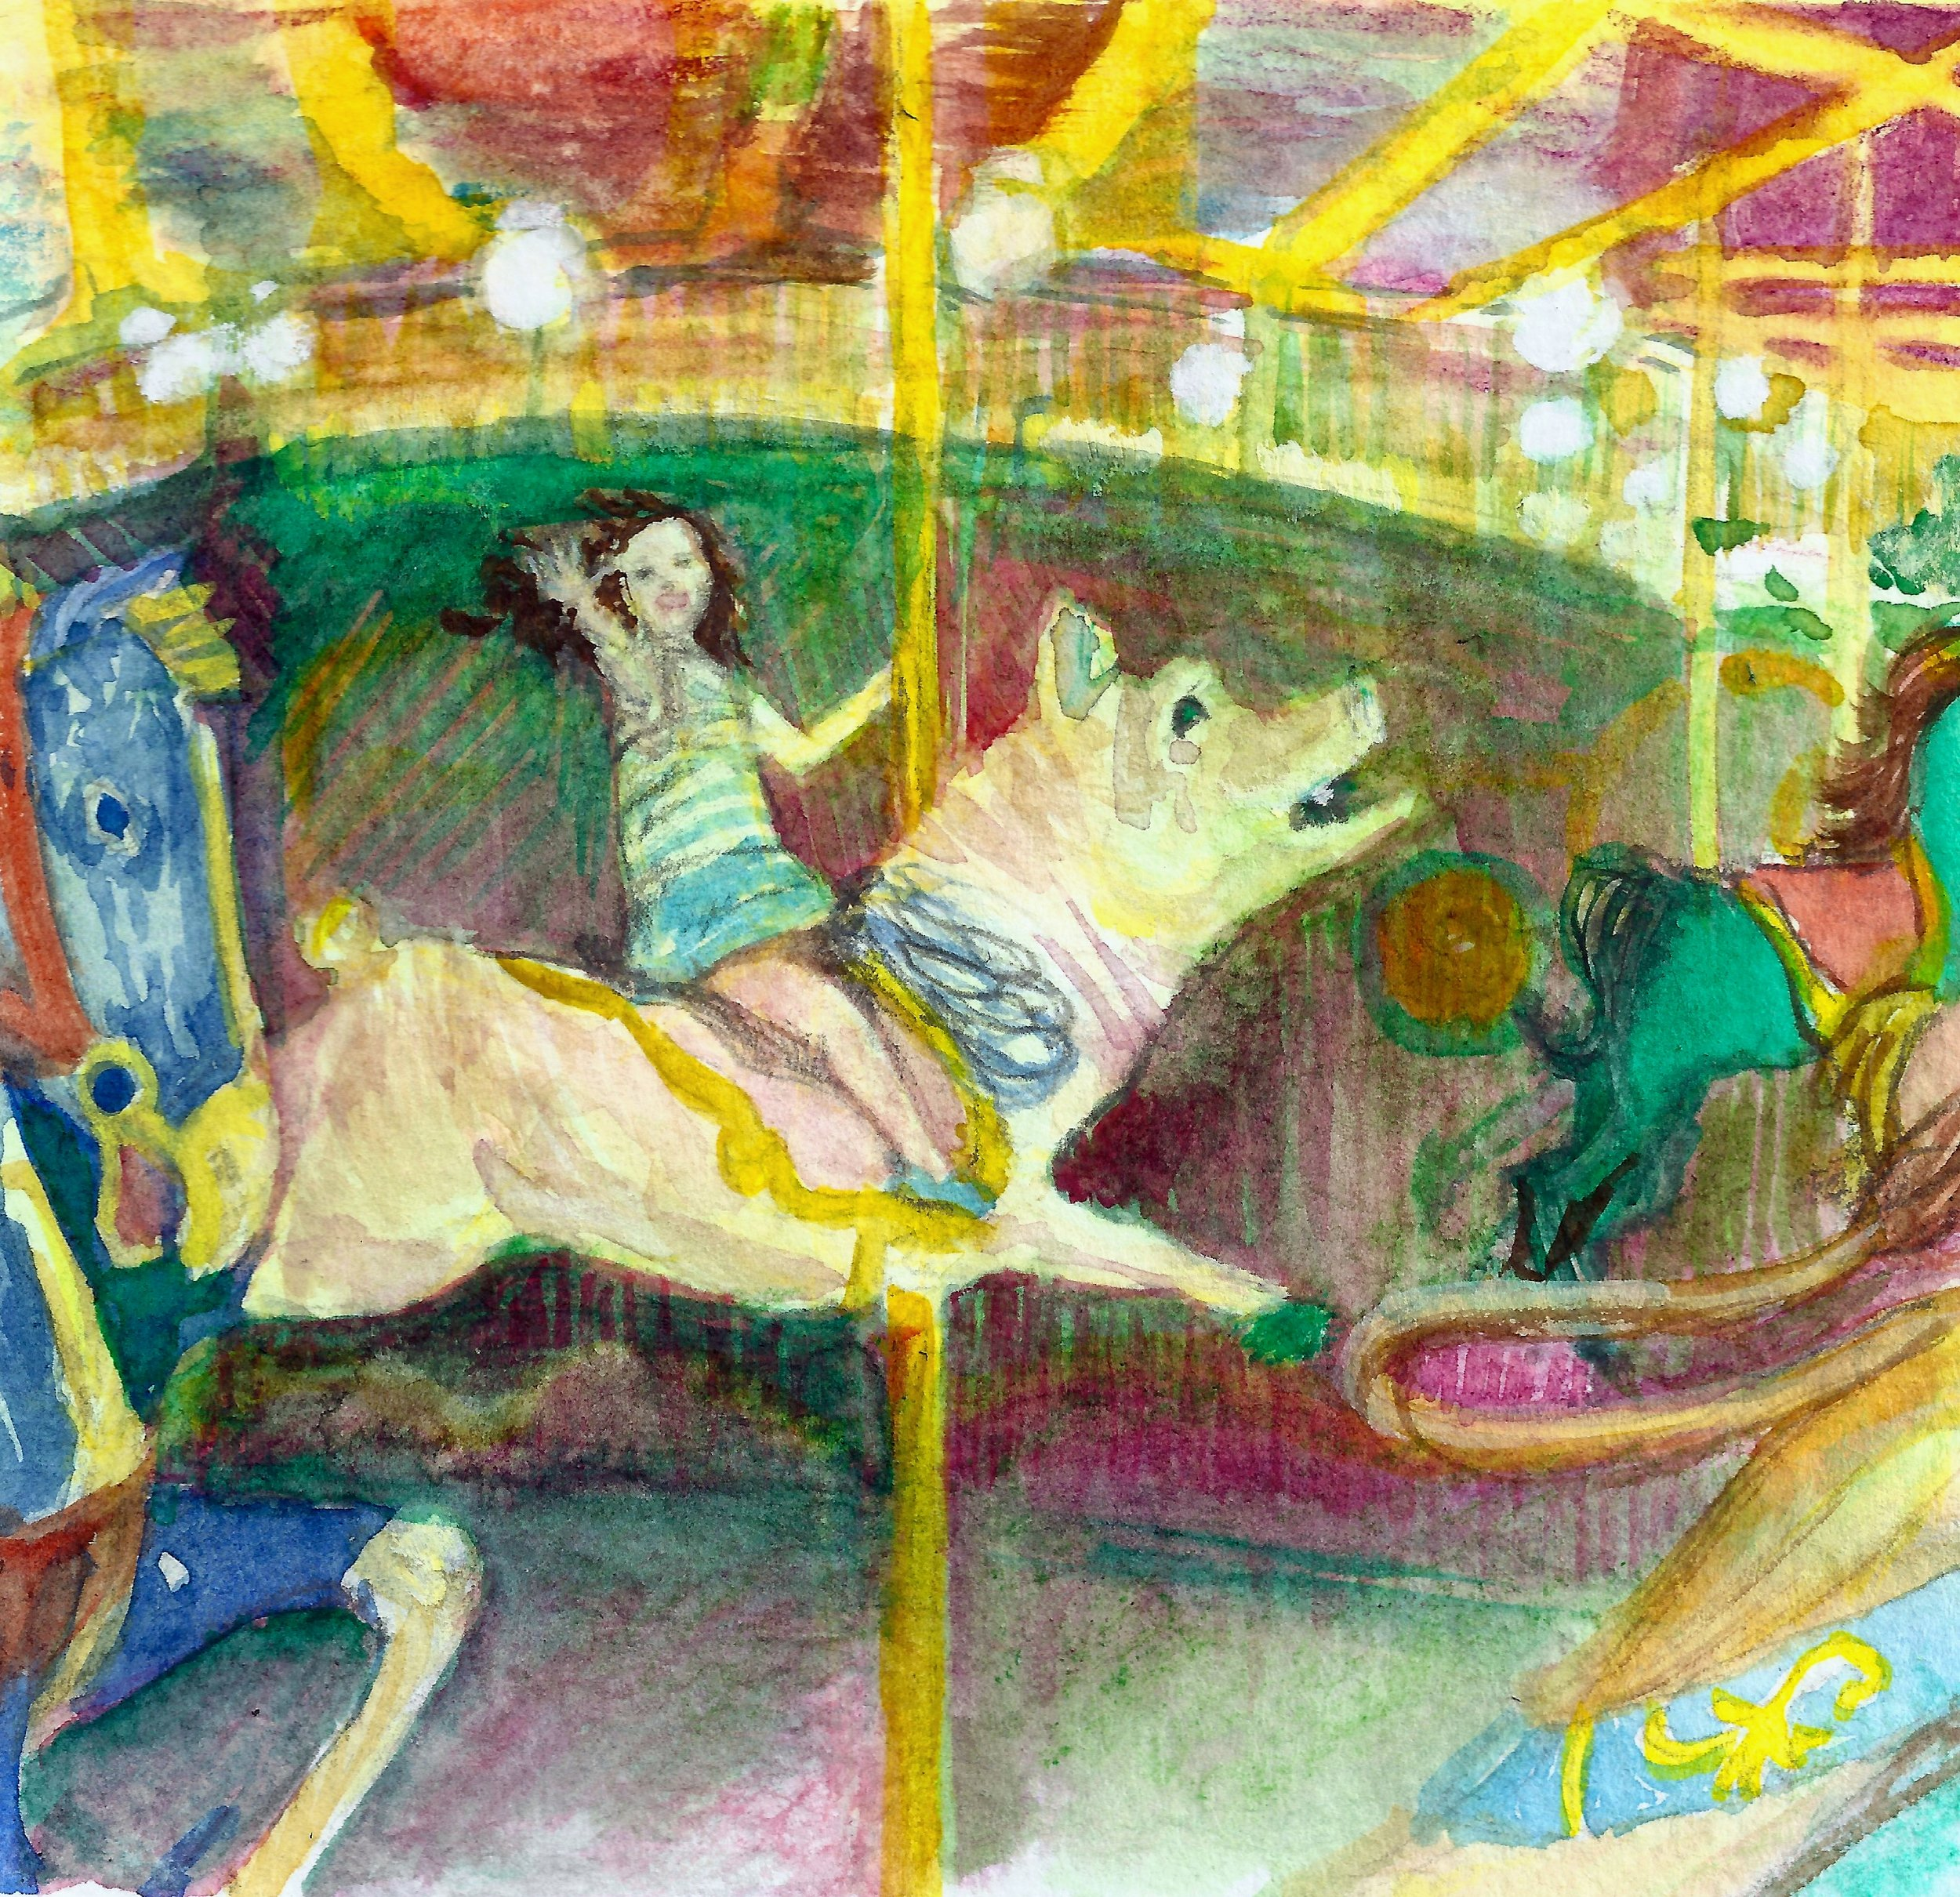 Merry on the Carousel  Mixed Media. acrylic, watercolor, graphite on 140 lb cold press